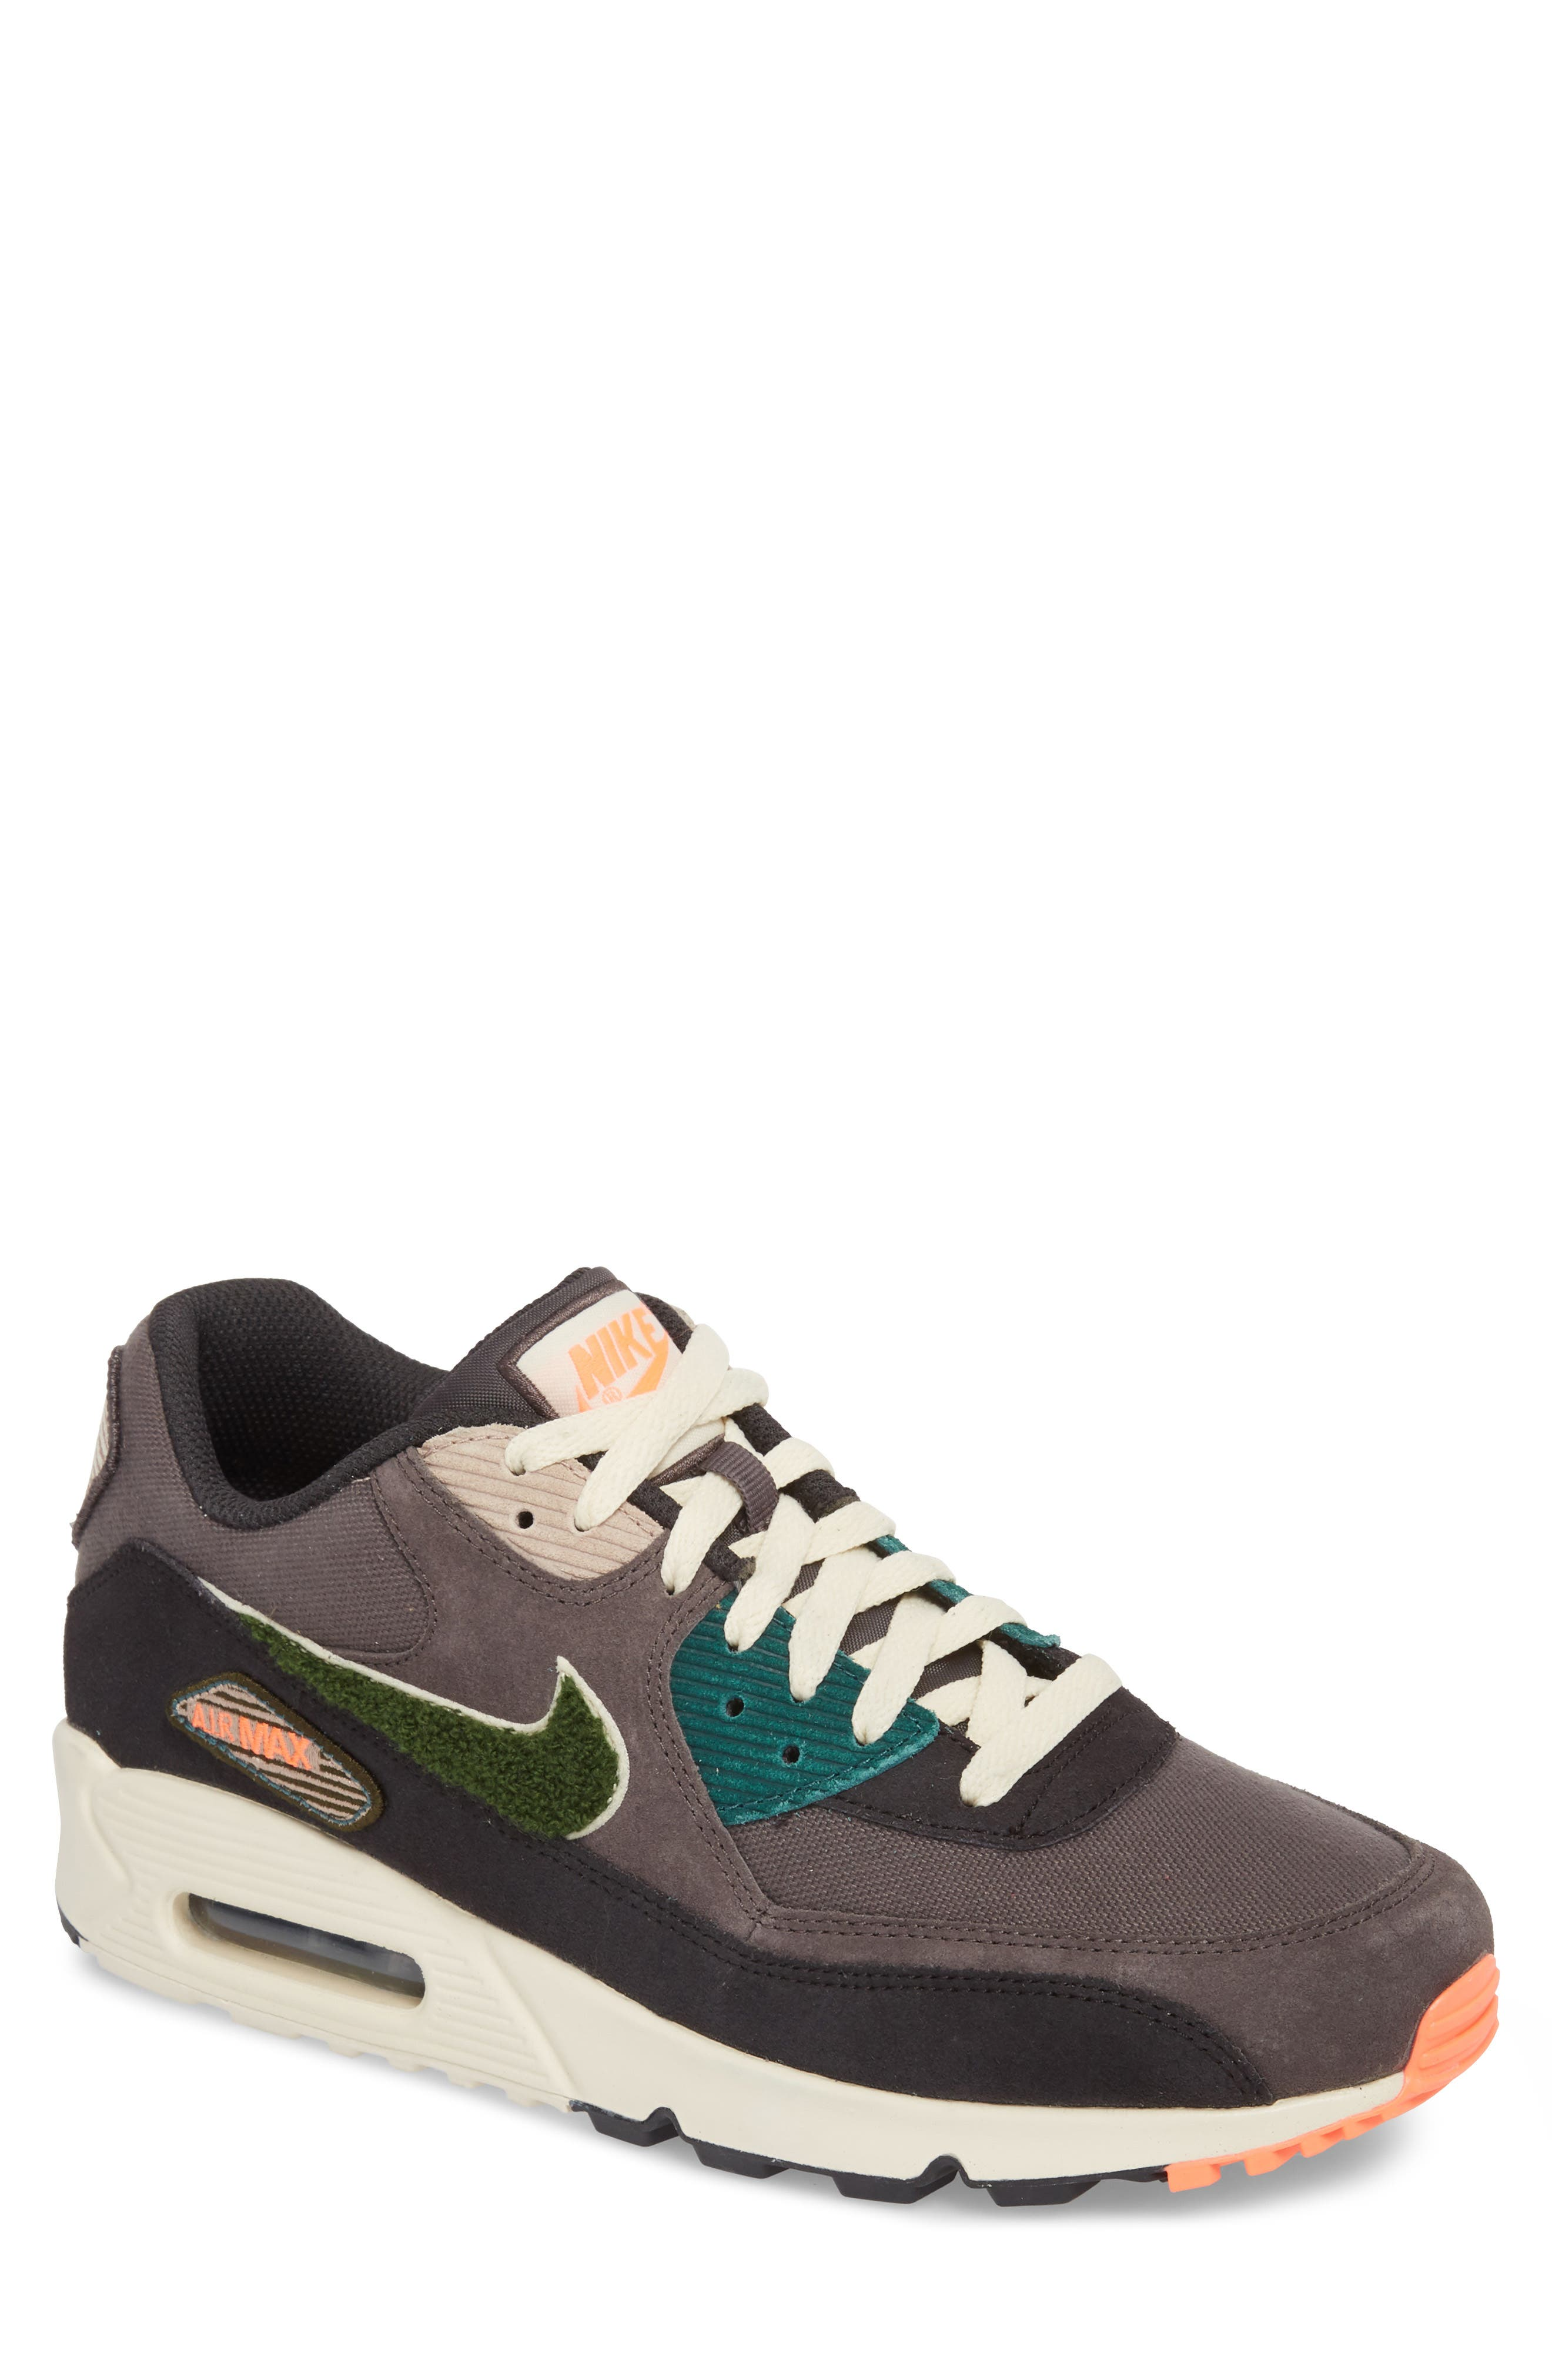 Air Max 90 Premium Sneaker,                             Main thumbnail 1, color,